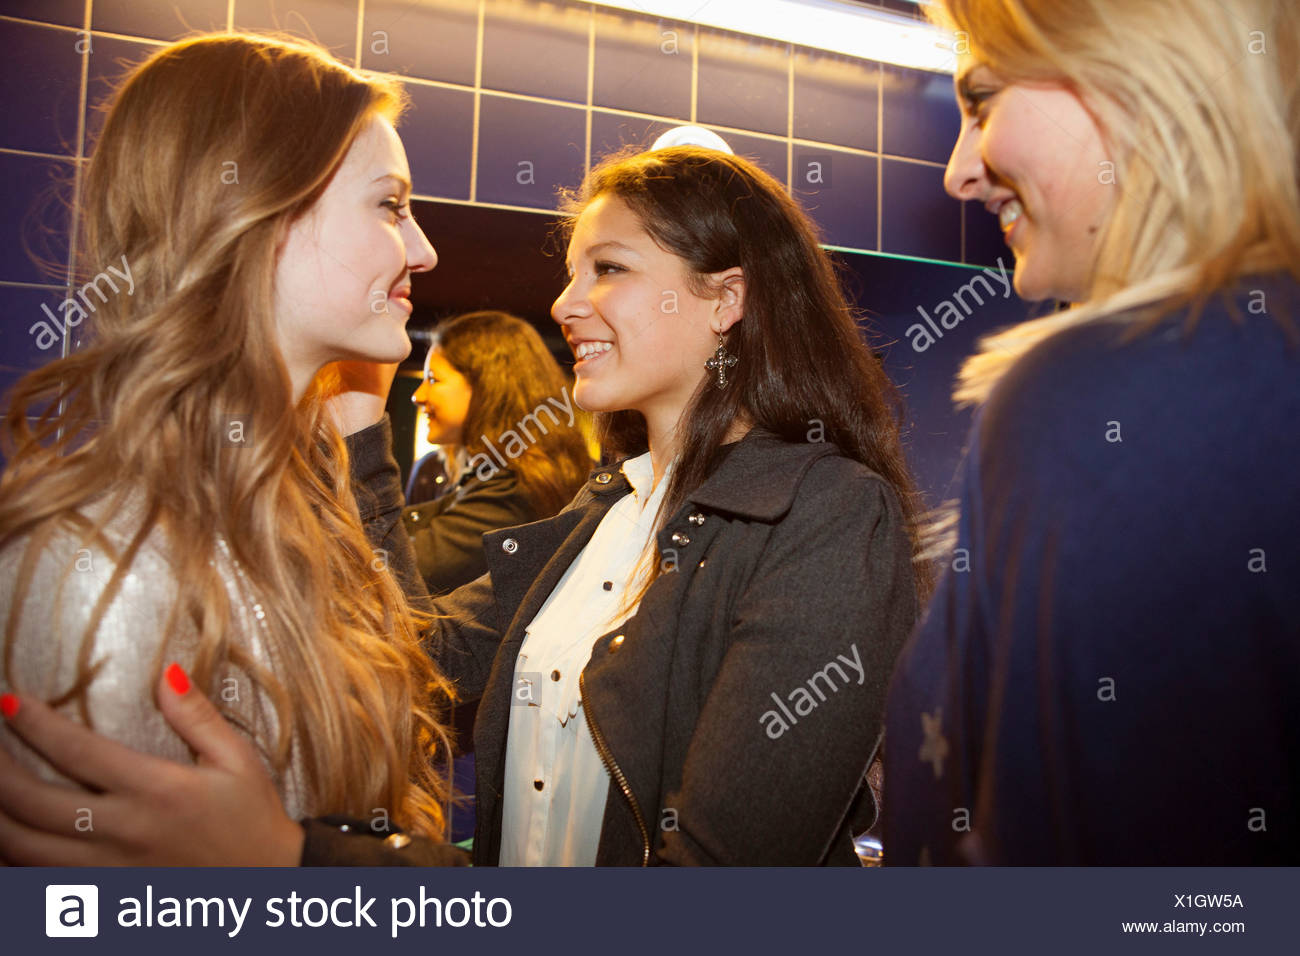 Three teenage girls chatting and smiling in toilets - Stock Image